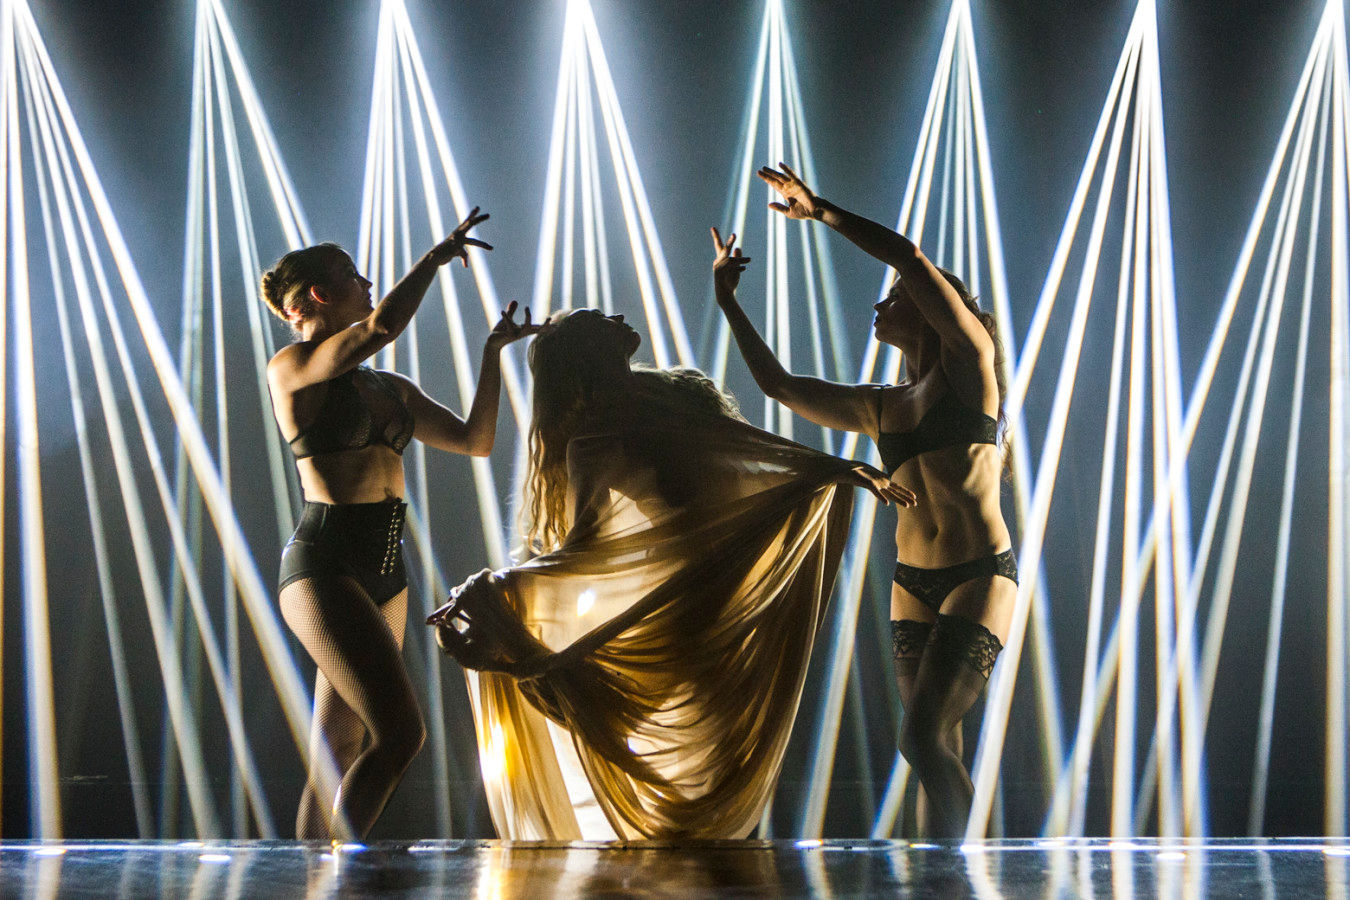 Sensatia at the Faena Theater